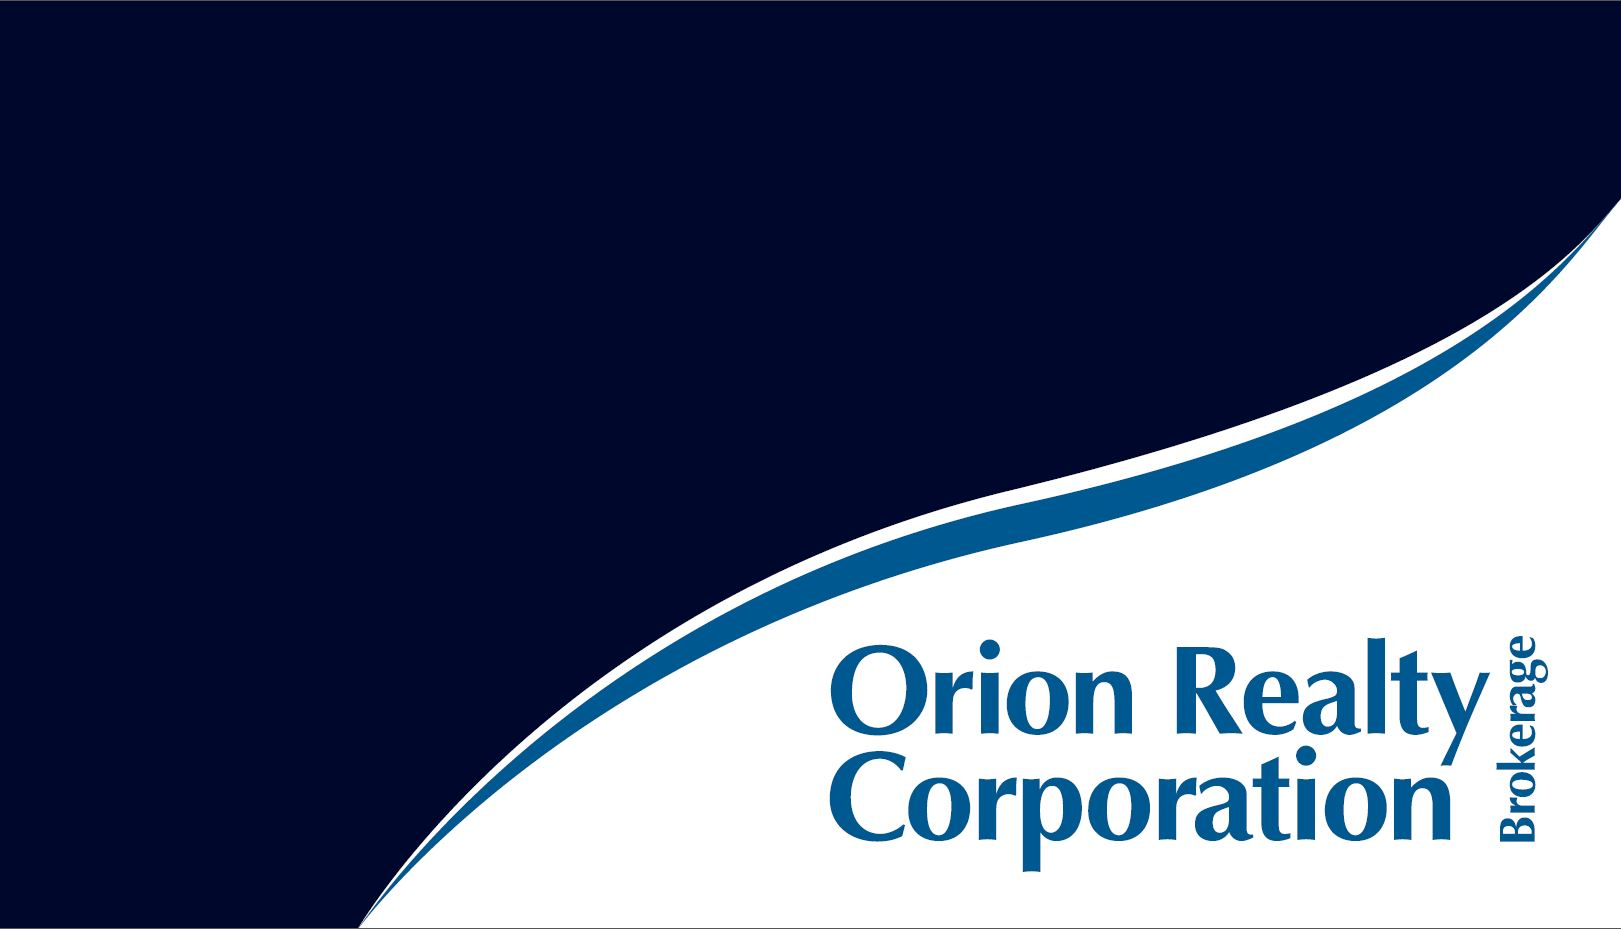 Orion Realty Corporation, Brokerage